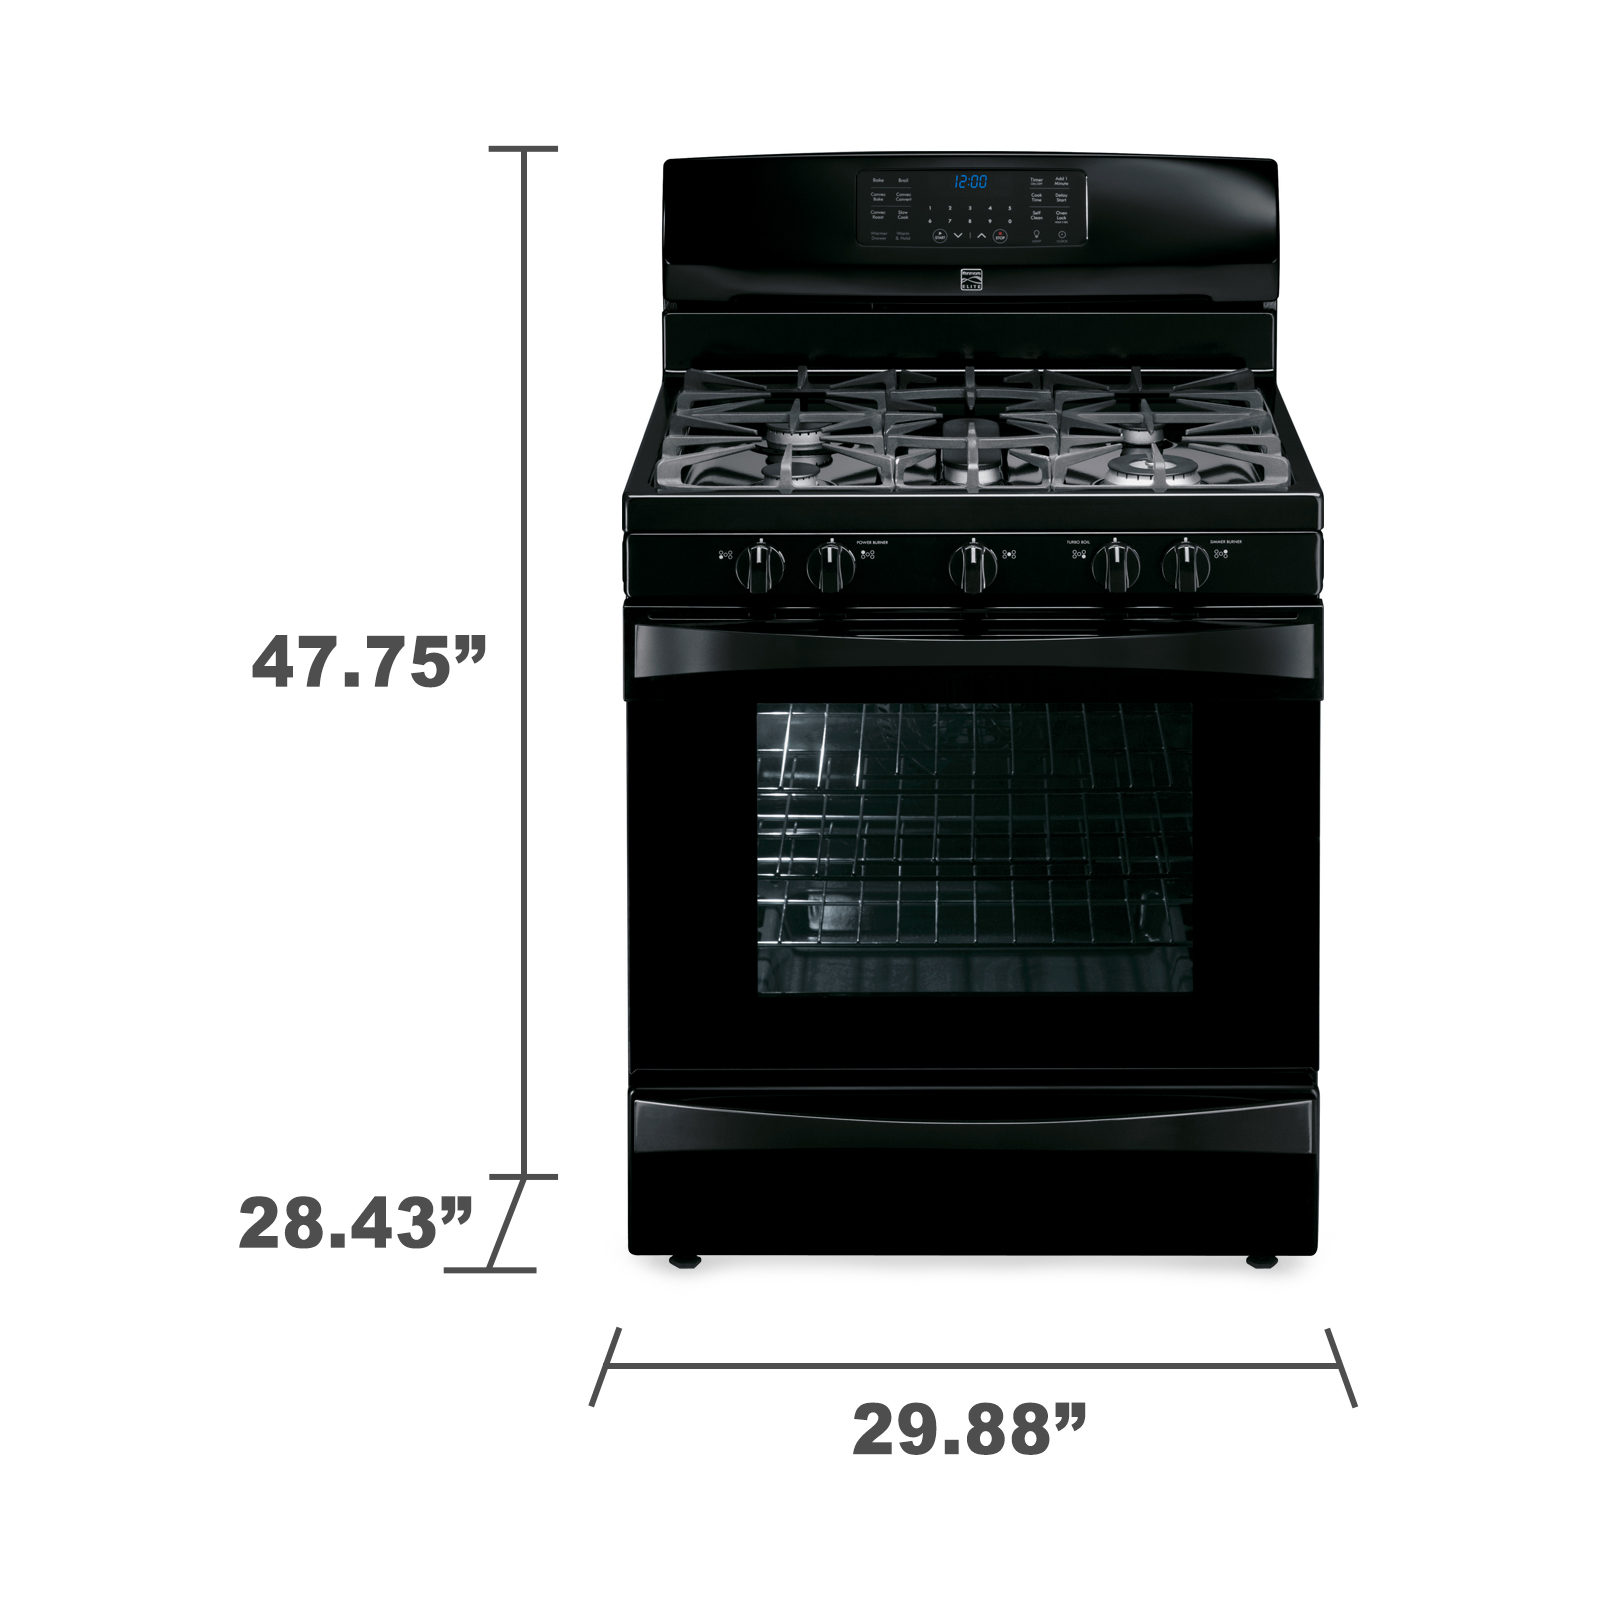 Kenmore Elite 75239 5.6 cu. ft. Gas Range w/ True Convection - Black